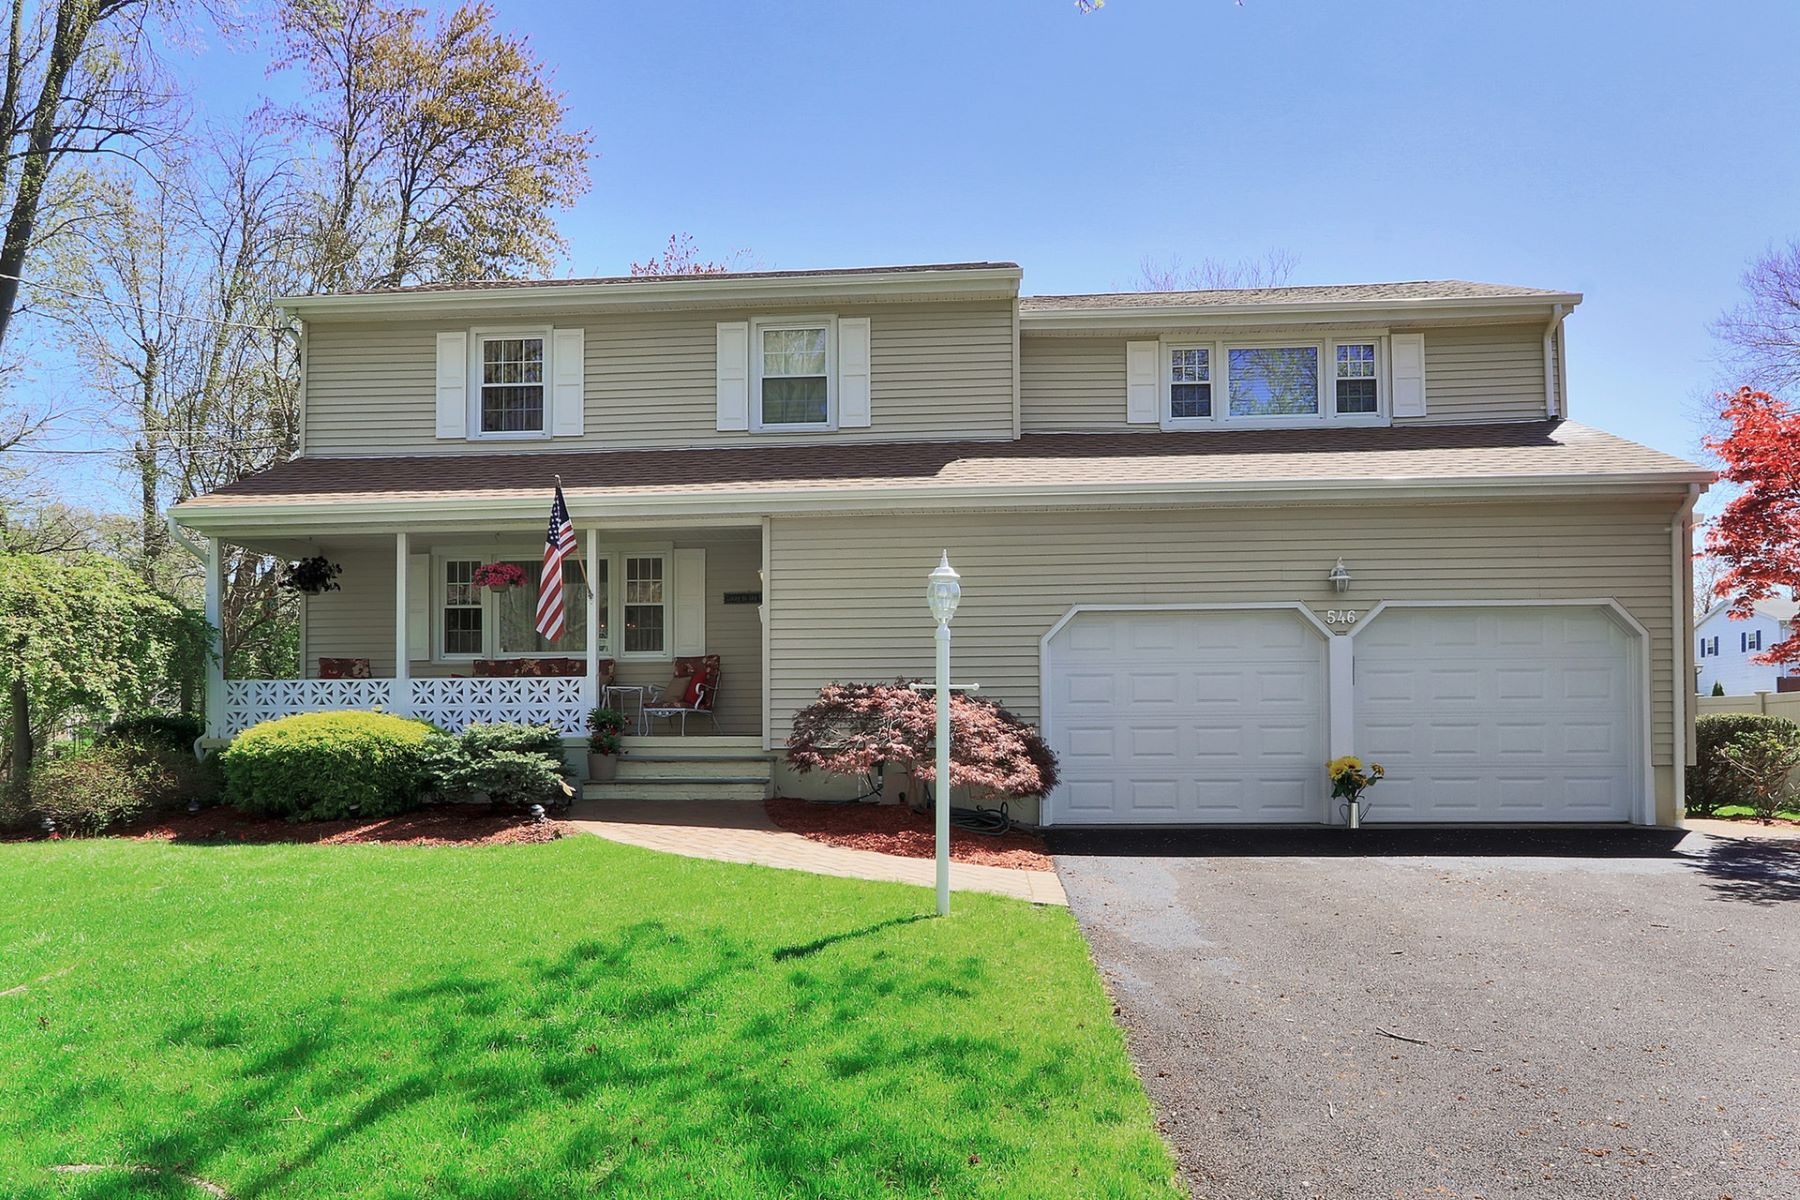 Single Family Homes for Sale at Charming Sidehall Colonial 546 Redwood Road Paramus, New Jersey 07652 United States